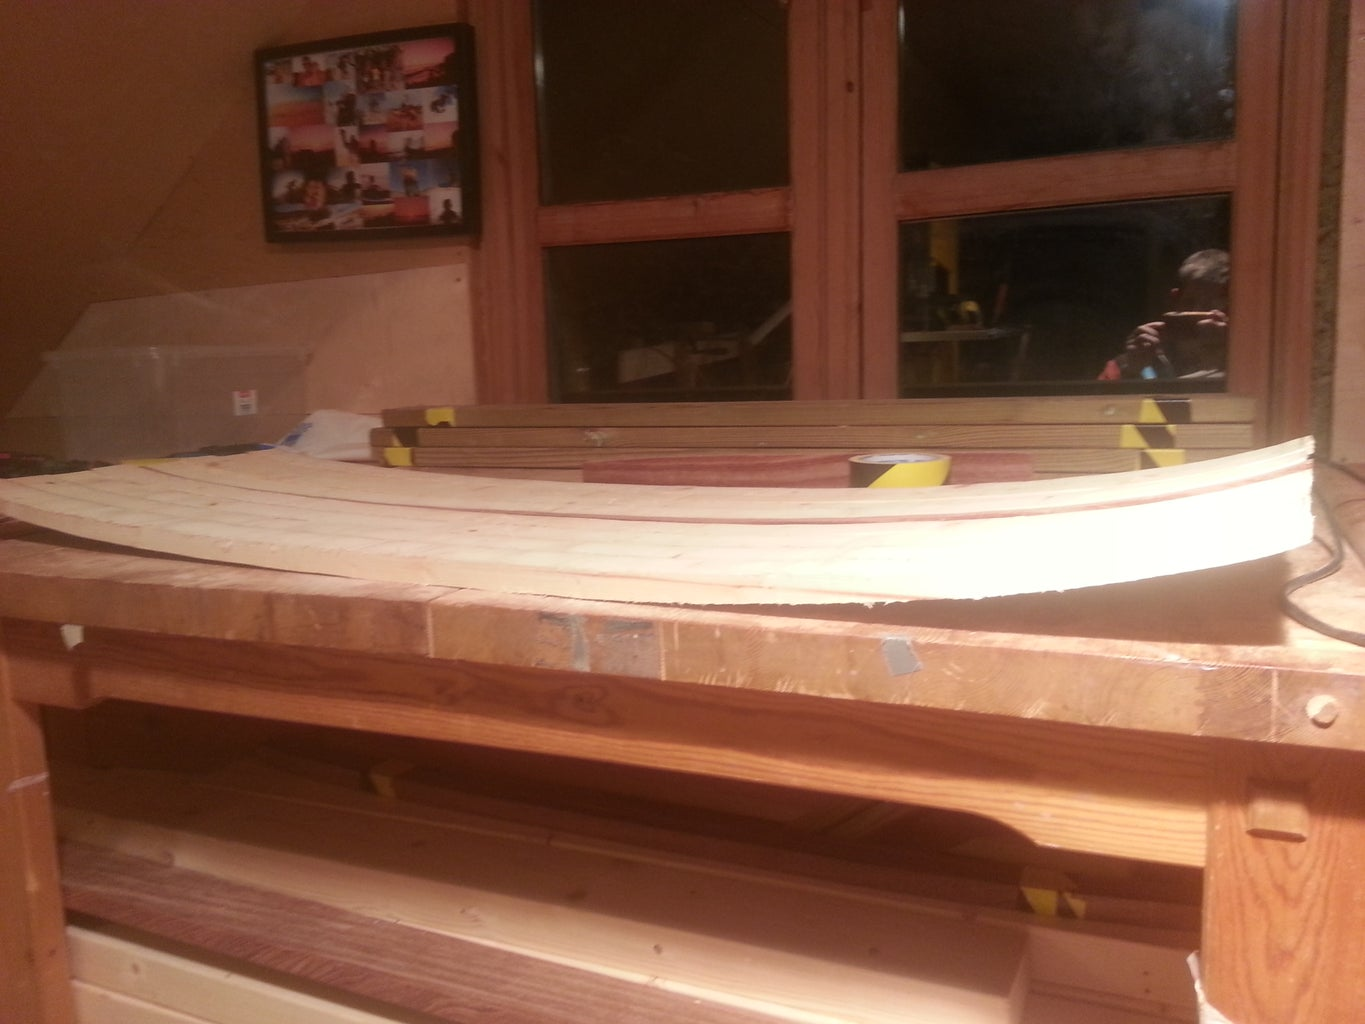 Rough Sanding and Cutting Outline